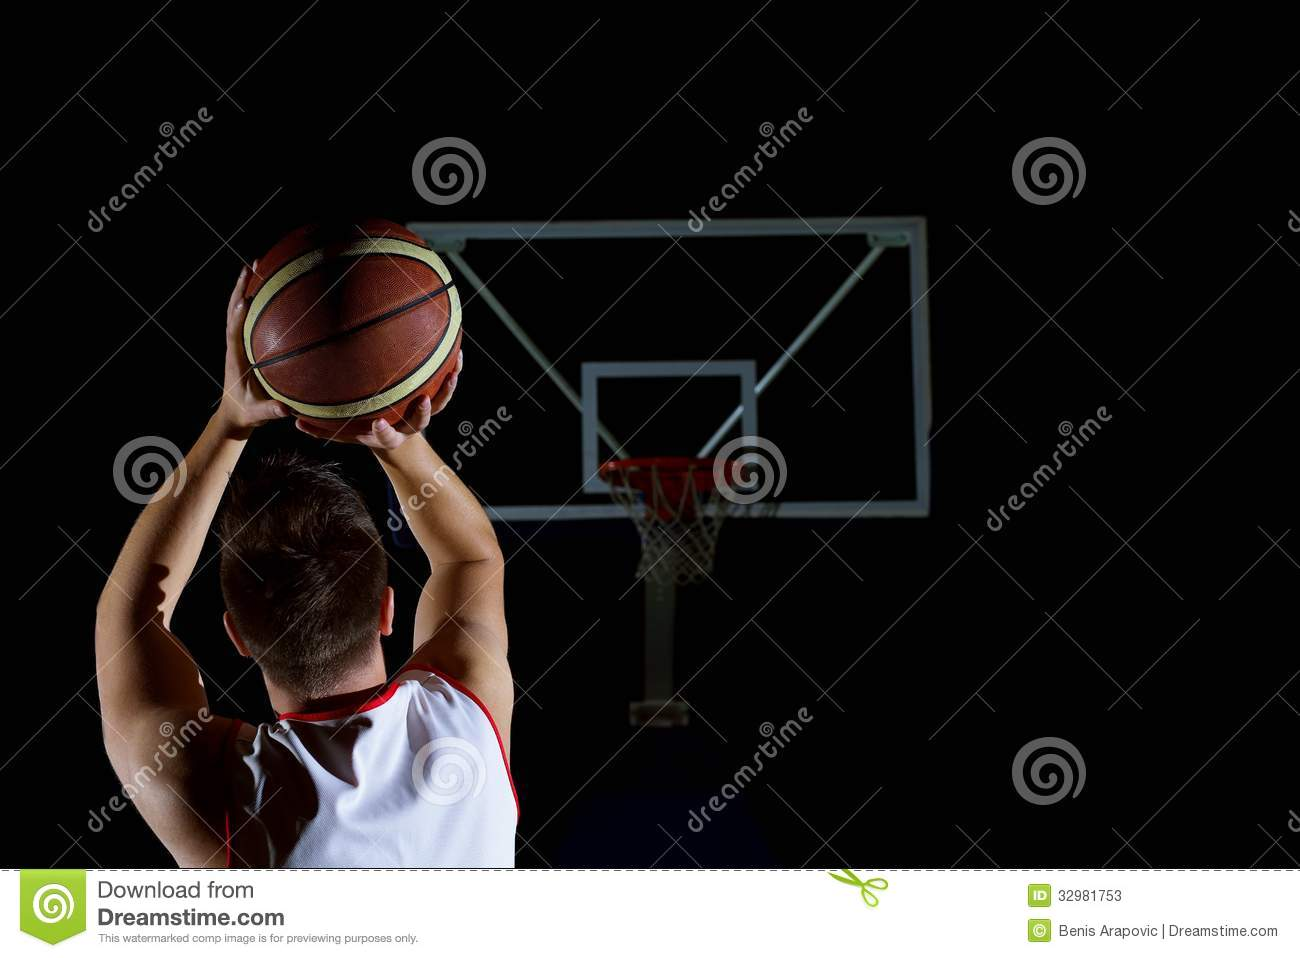 Basketball game sport player in action isolated on black background.